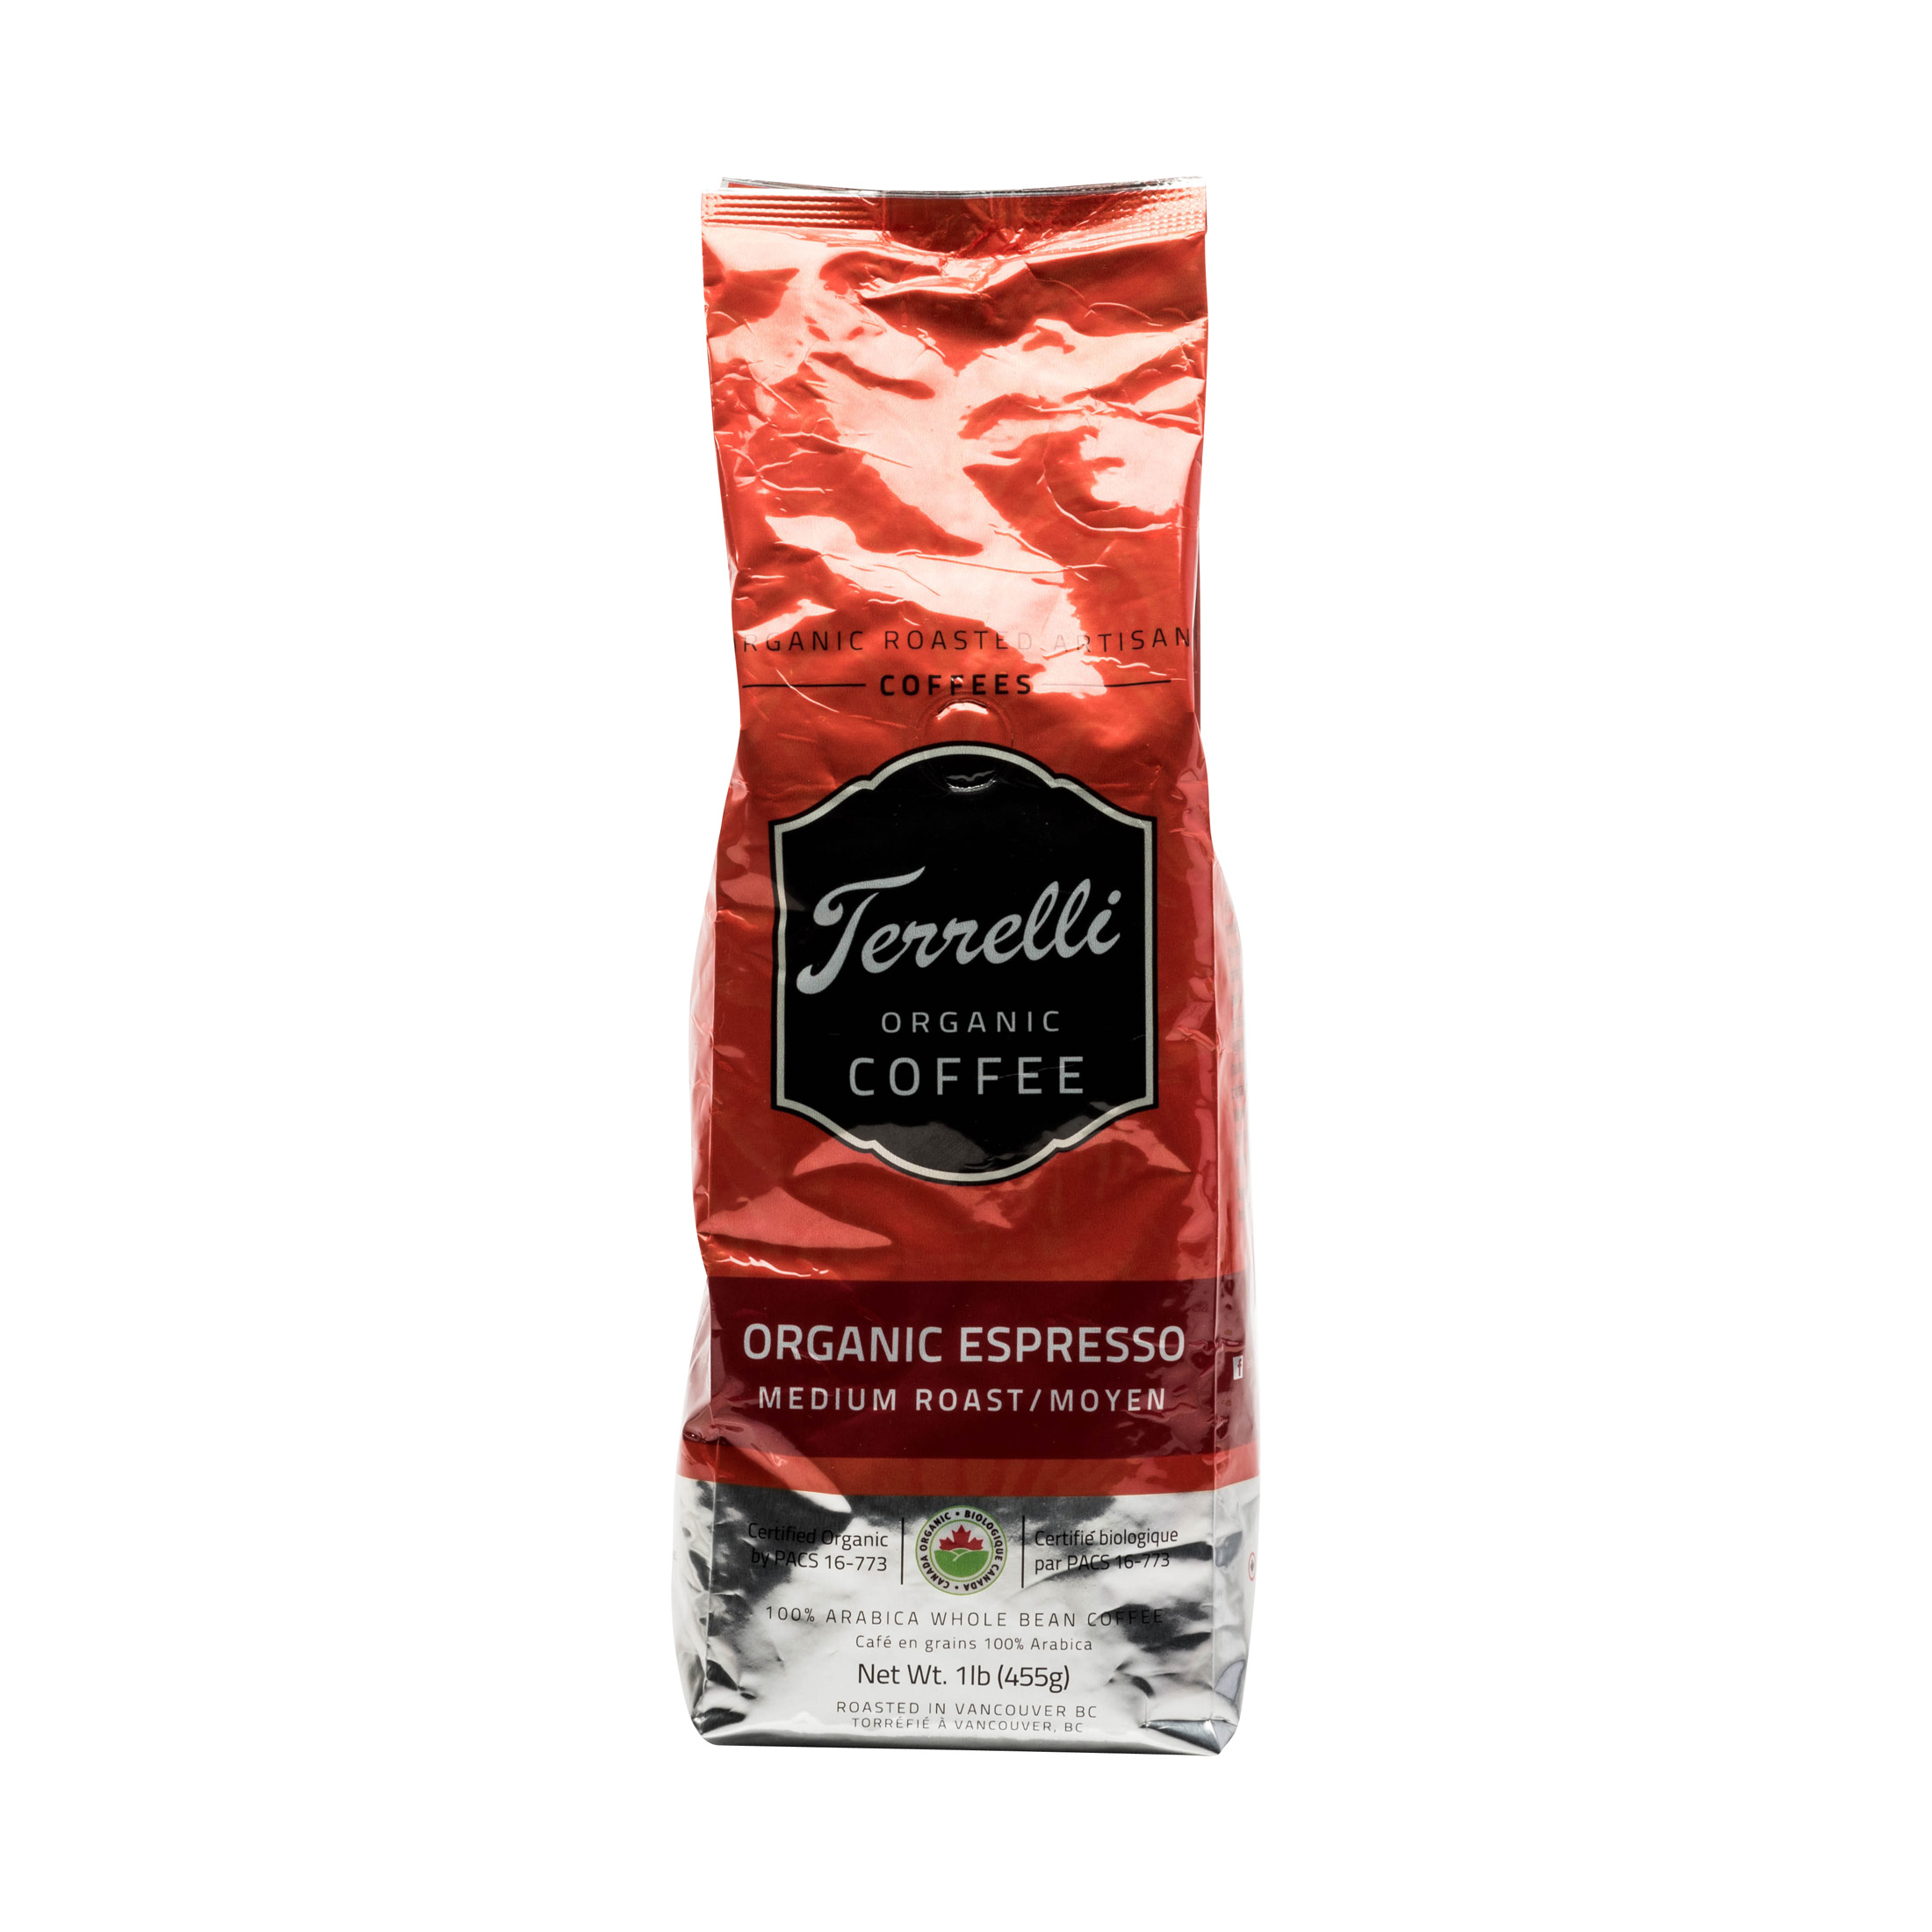 ORGANIC ESPRESSO MEDIUM ROAST